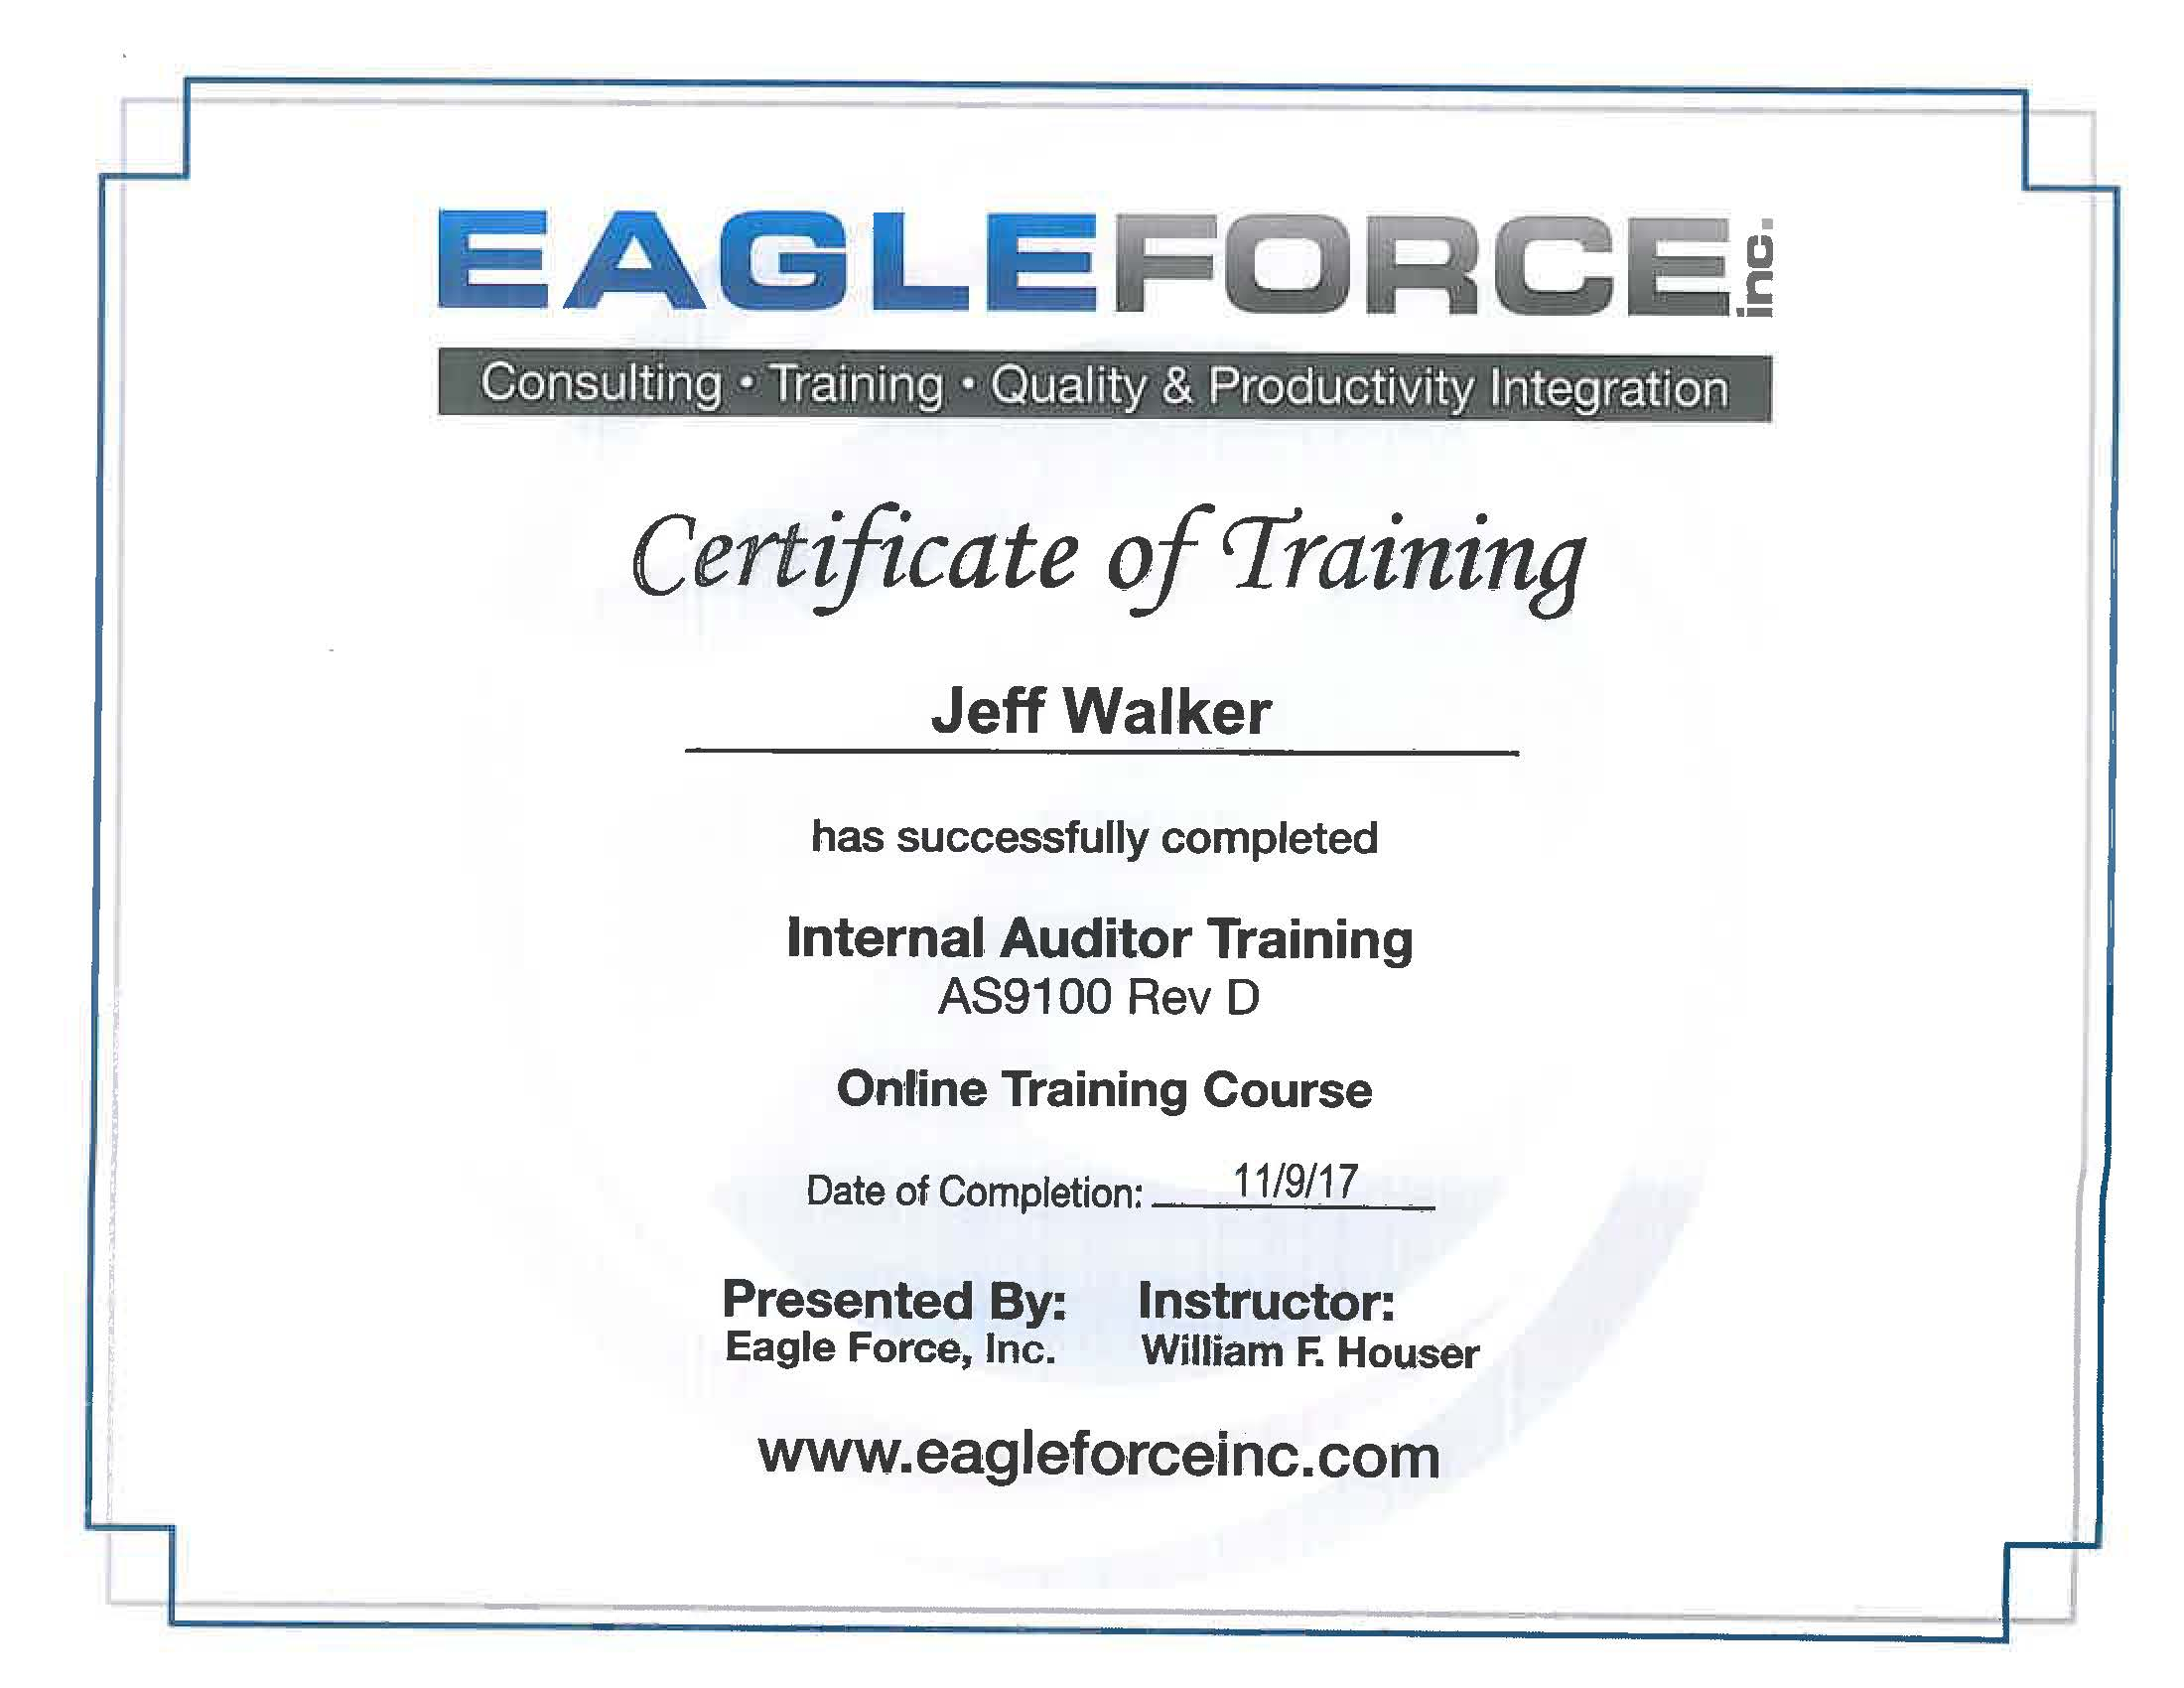 Jeff Walker-Certificate of Training.jpg